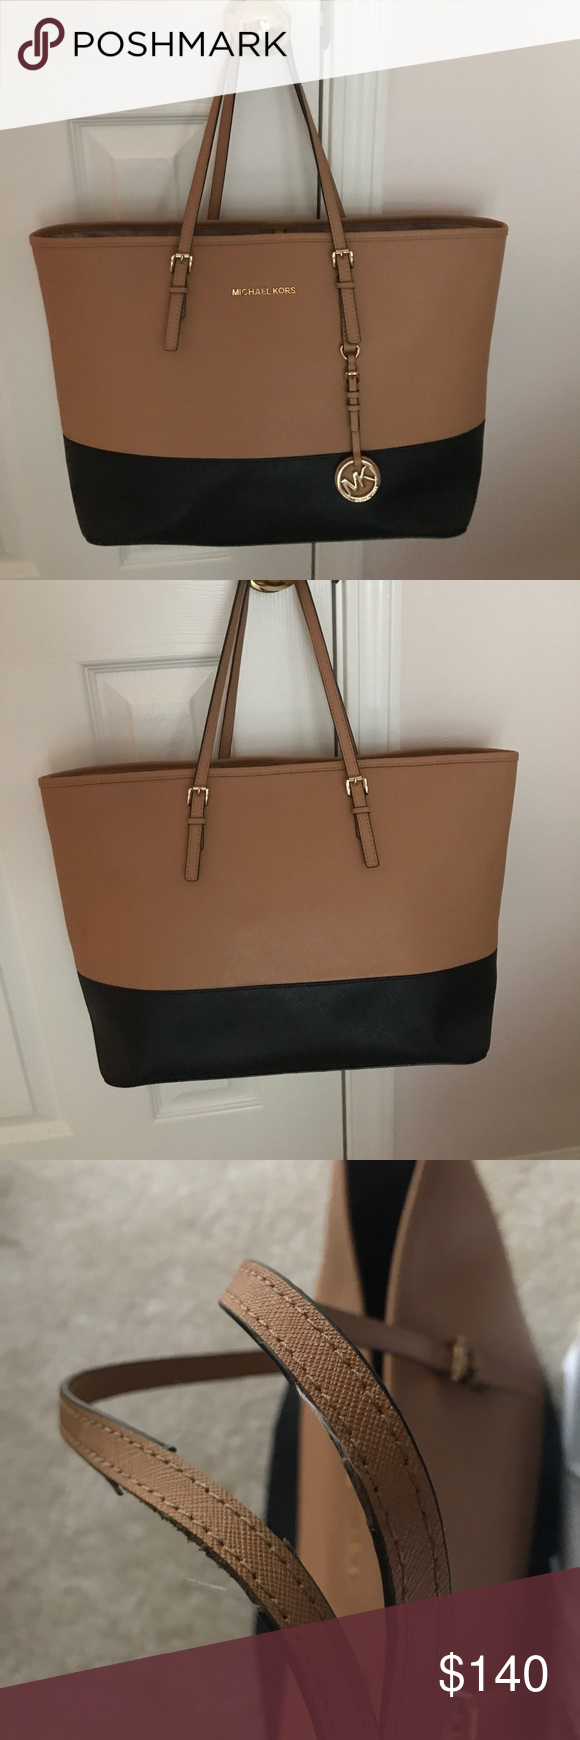 7806e28a0006 Large Michael Kors Getaway Tote Top half caramel/tan color Bottom half  black, Gold Hardware, Small damage on handles, Pen mark stain inside, Good  condition ...